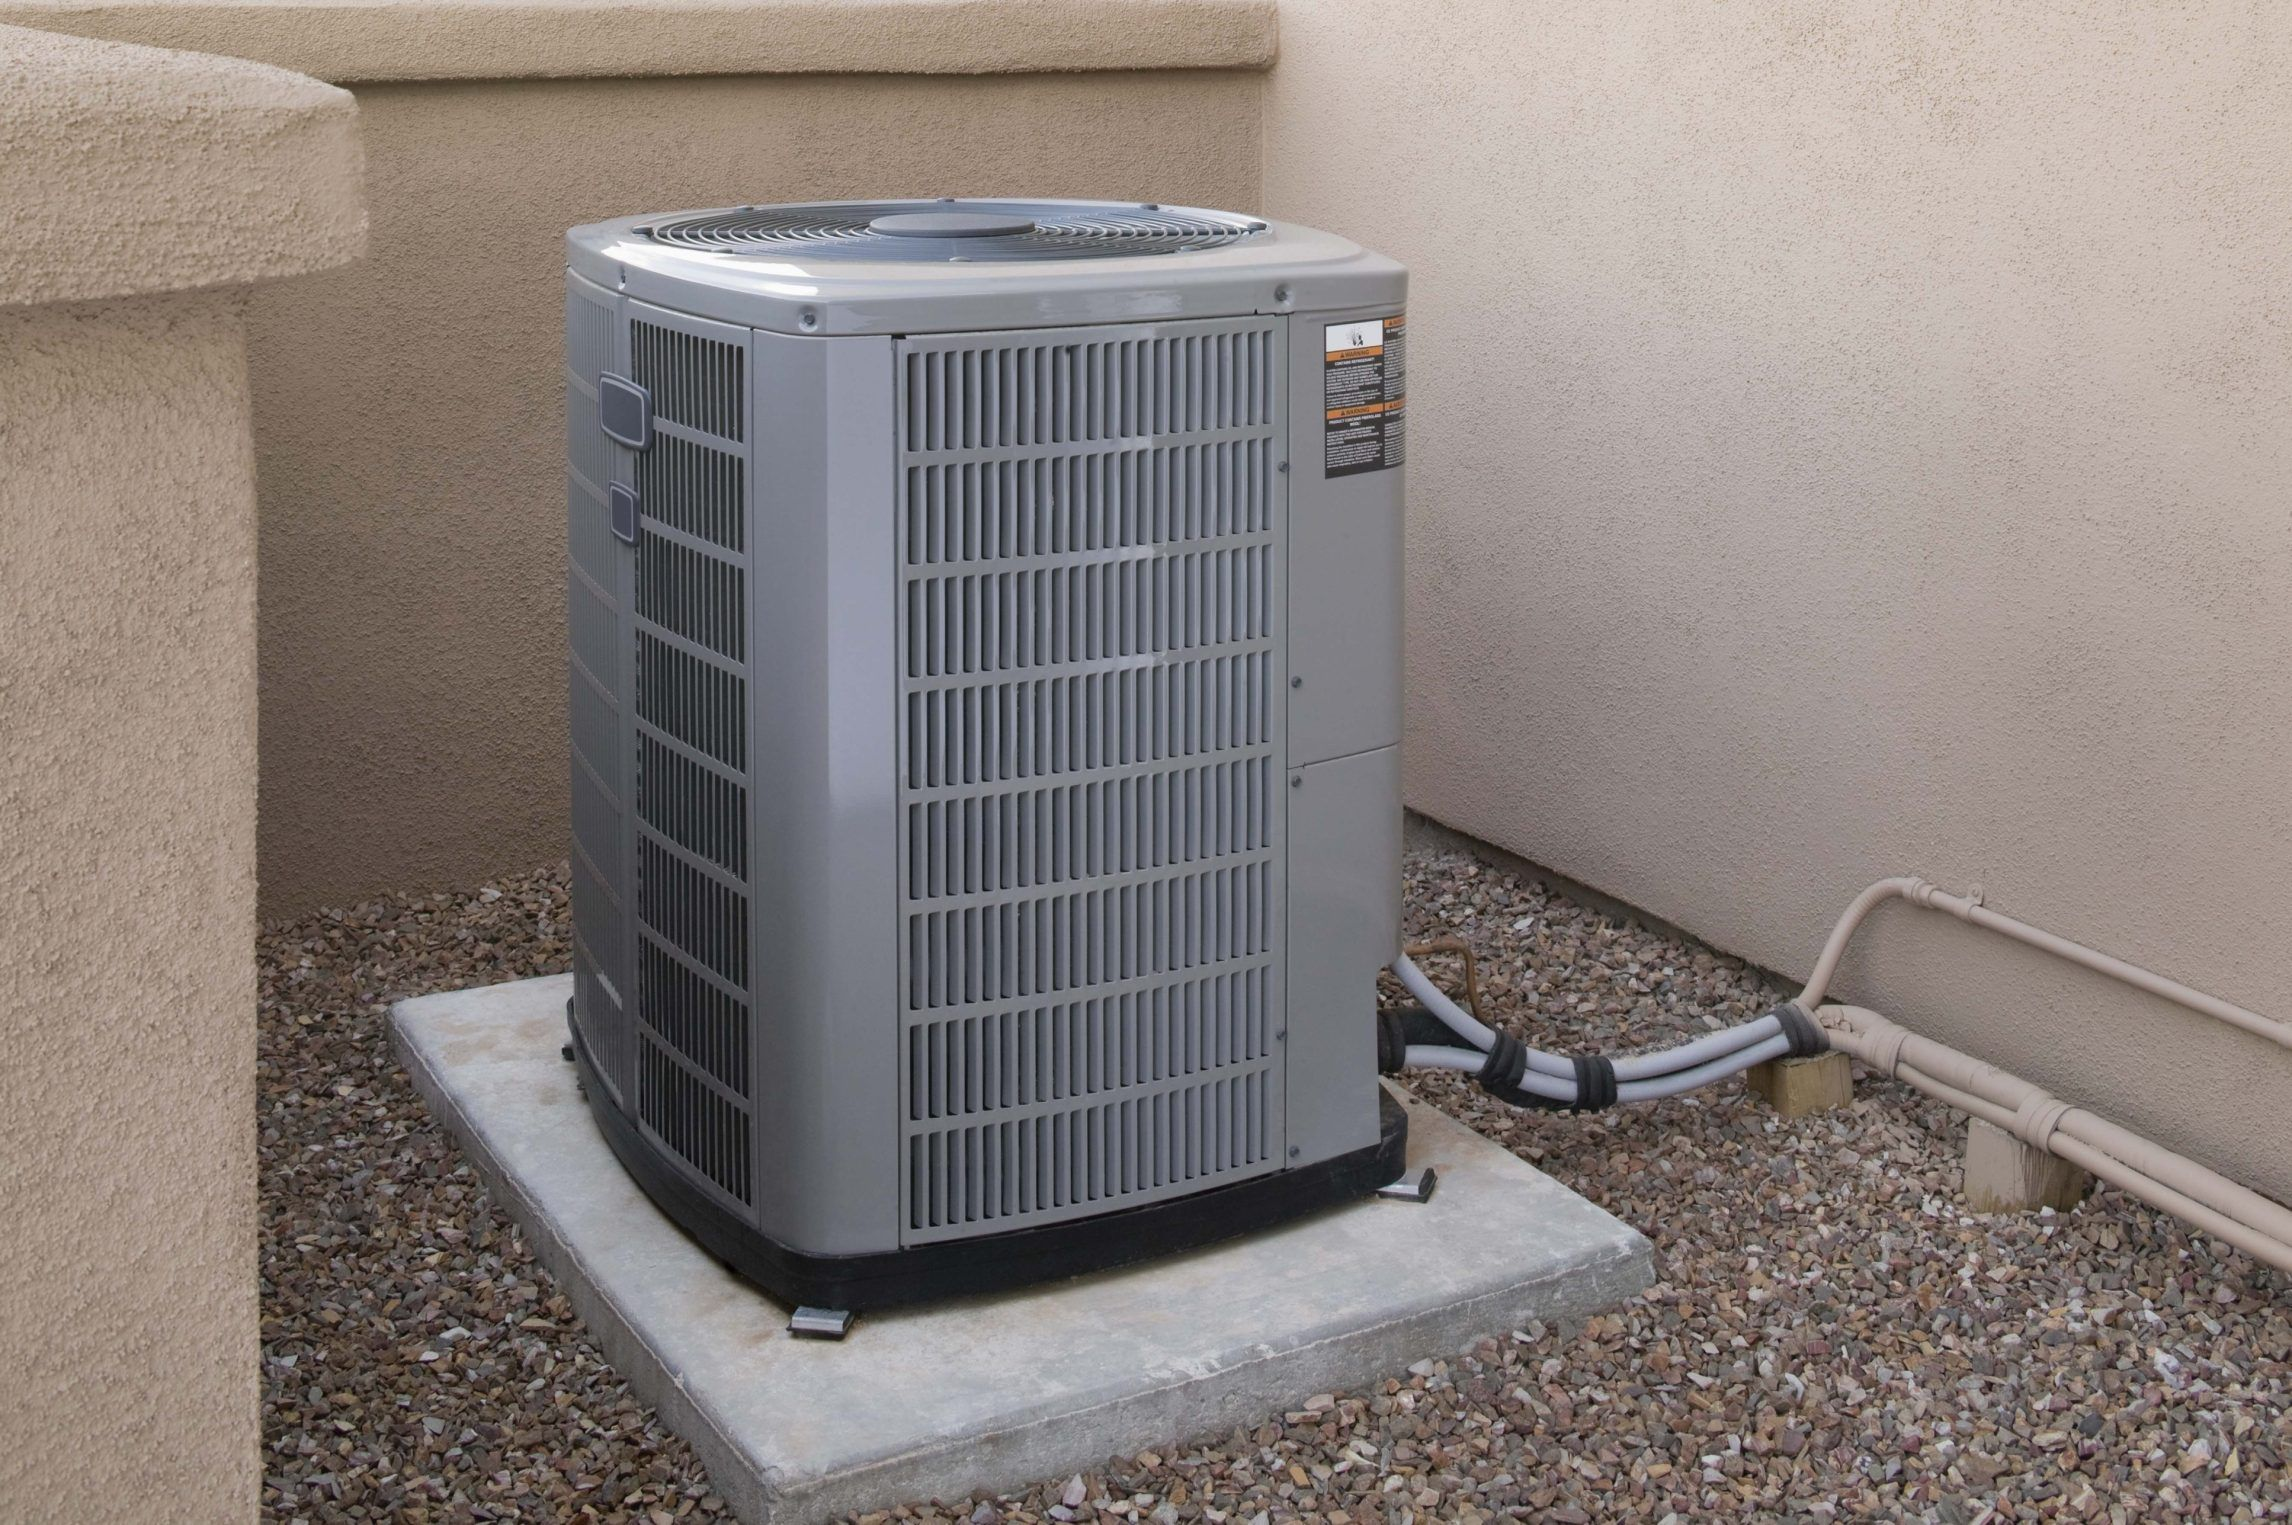 How to check your central air conditioner before calling a